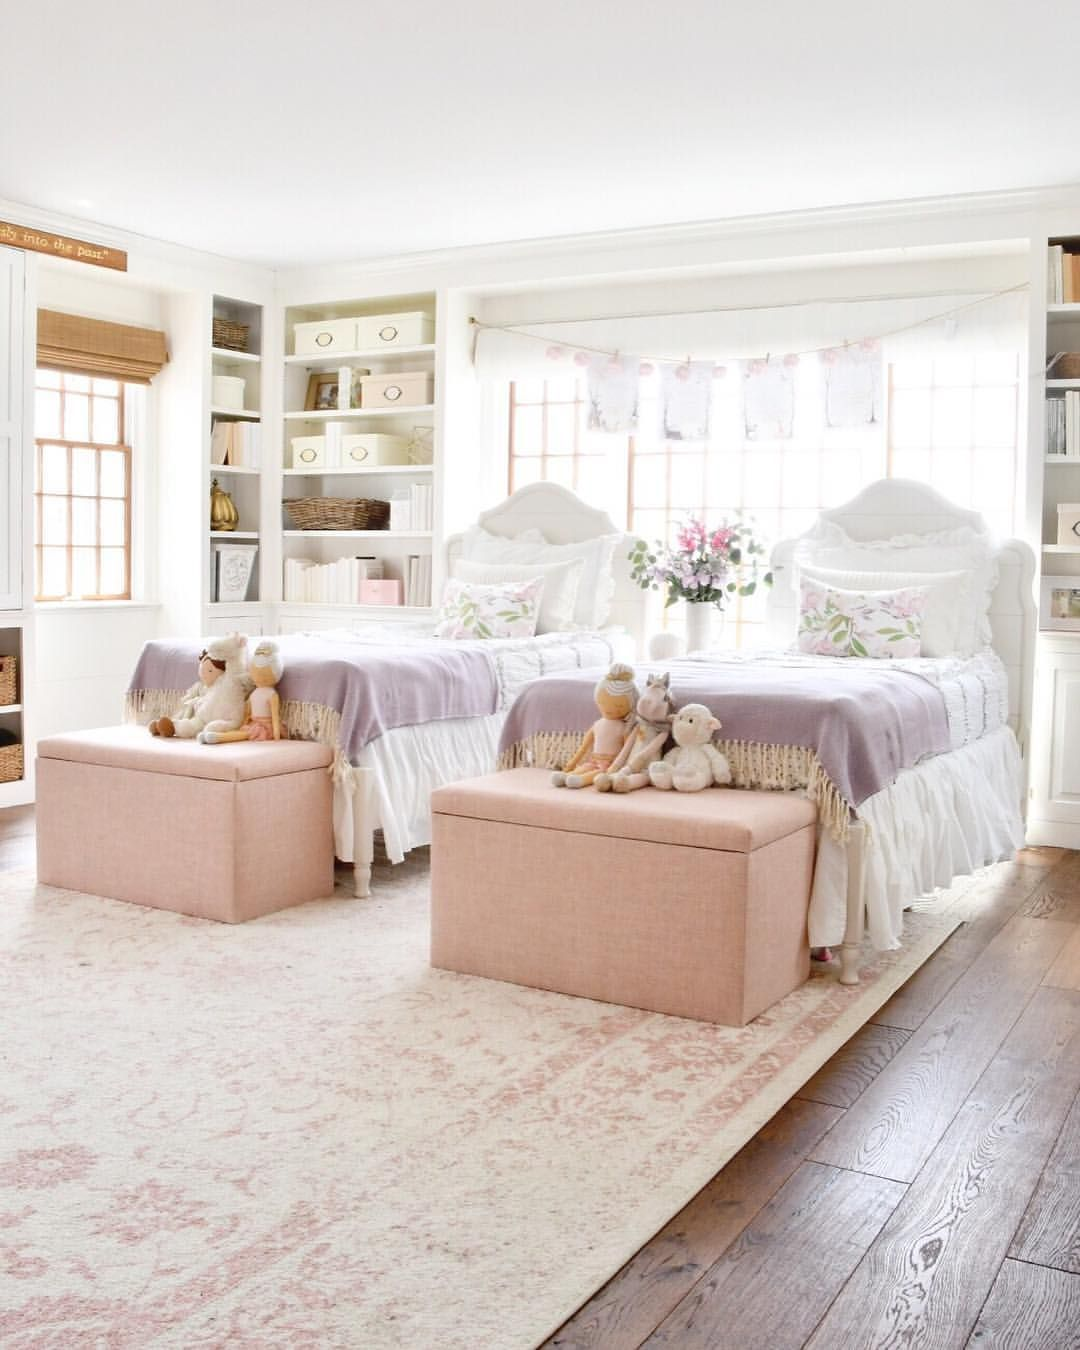 Luxury Kids Room: Bring The Magic To Your Kids' Room